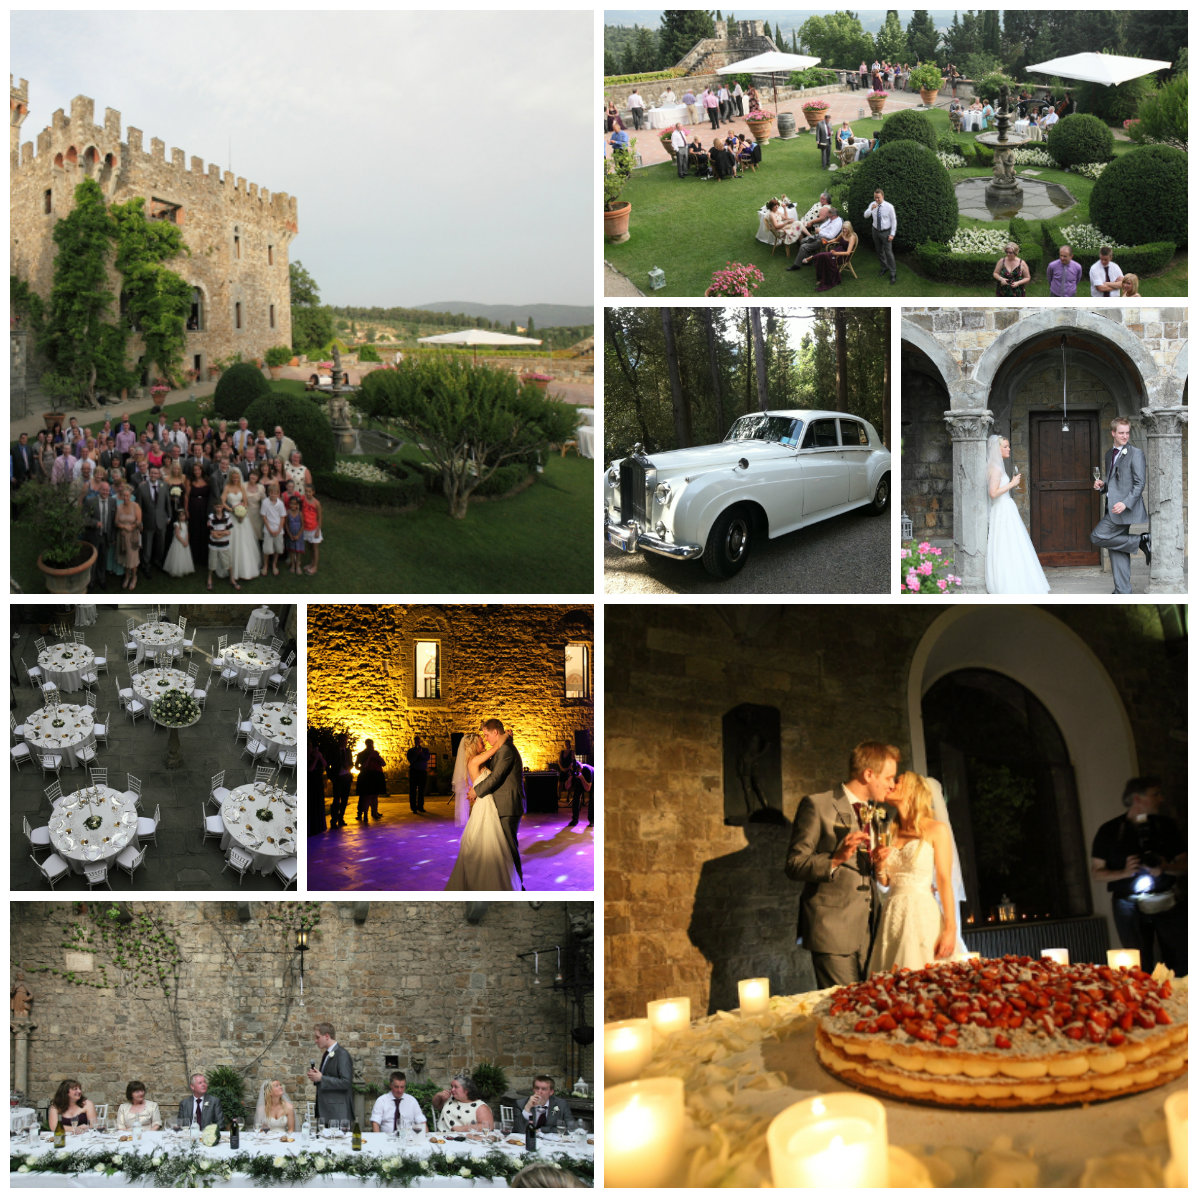 Wedding celebration in Florence